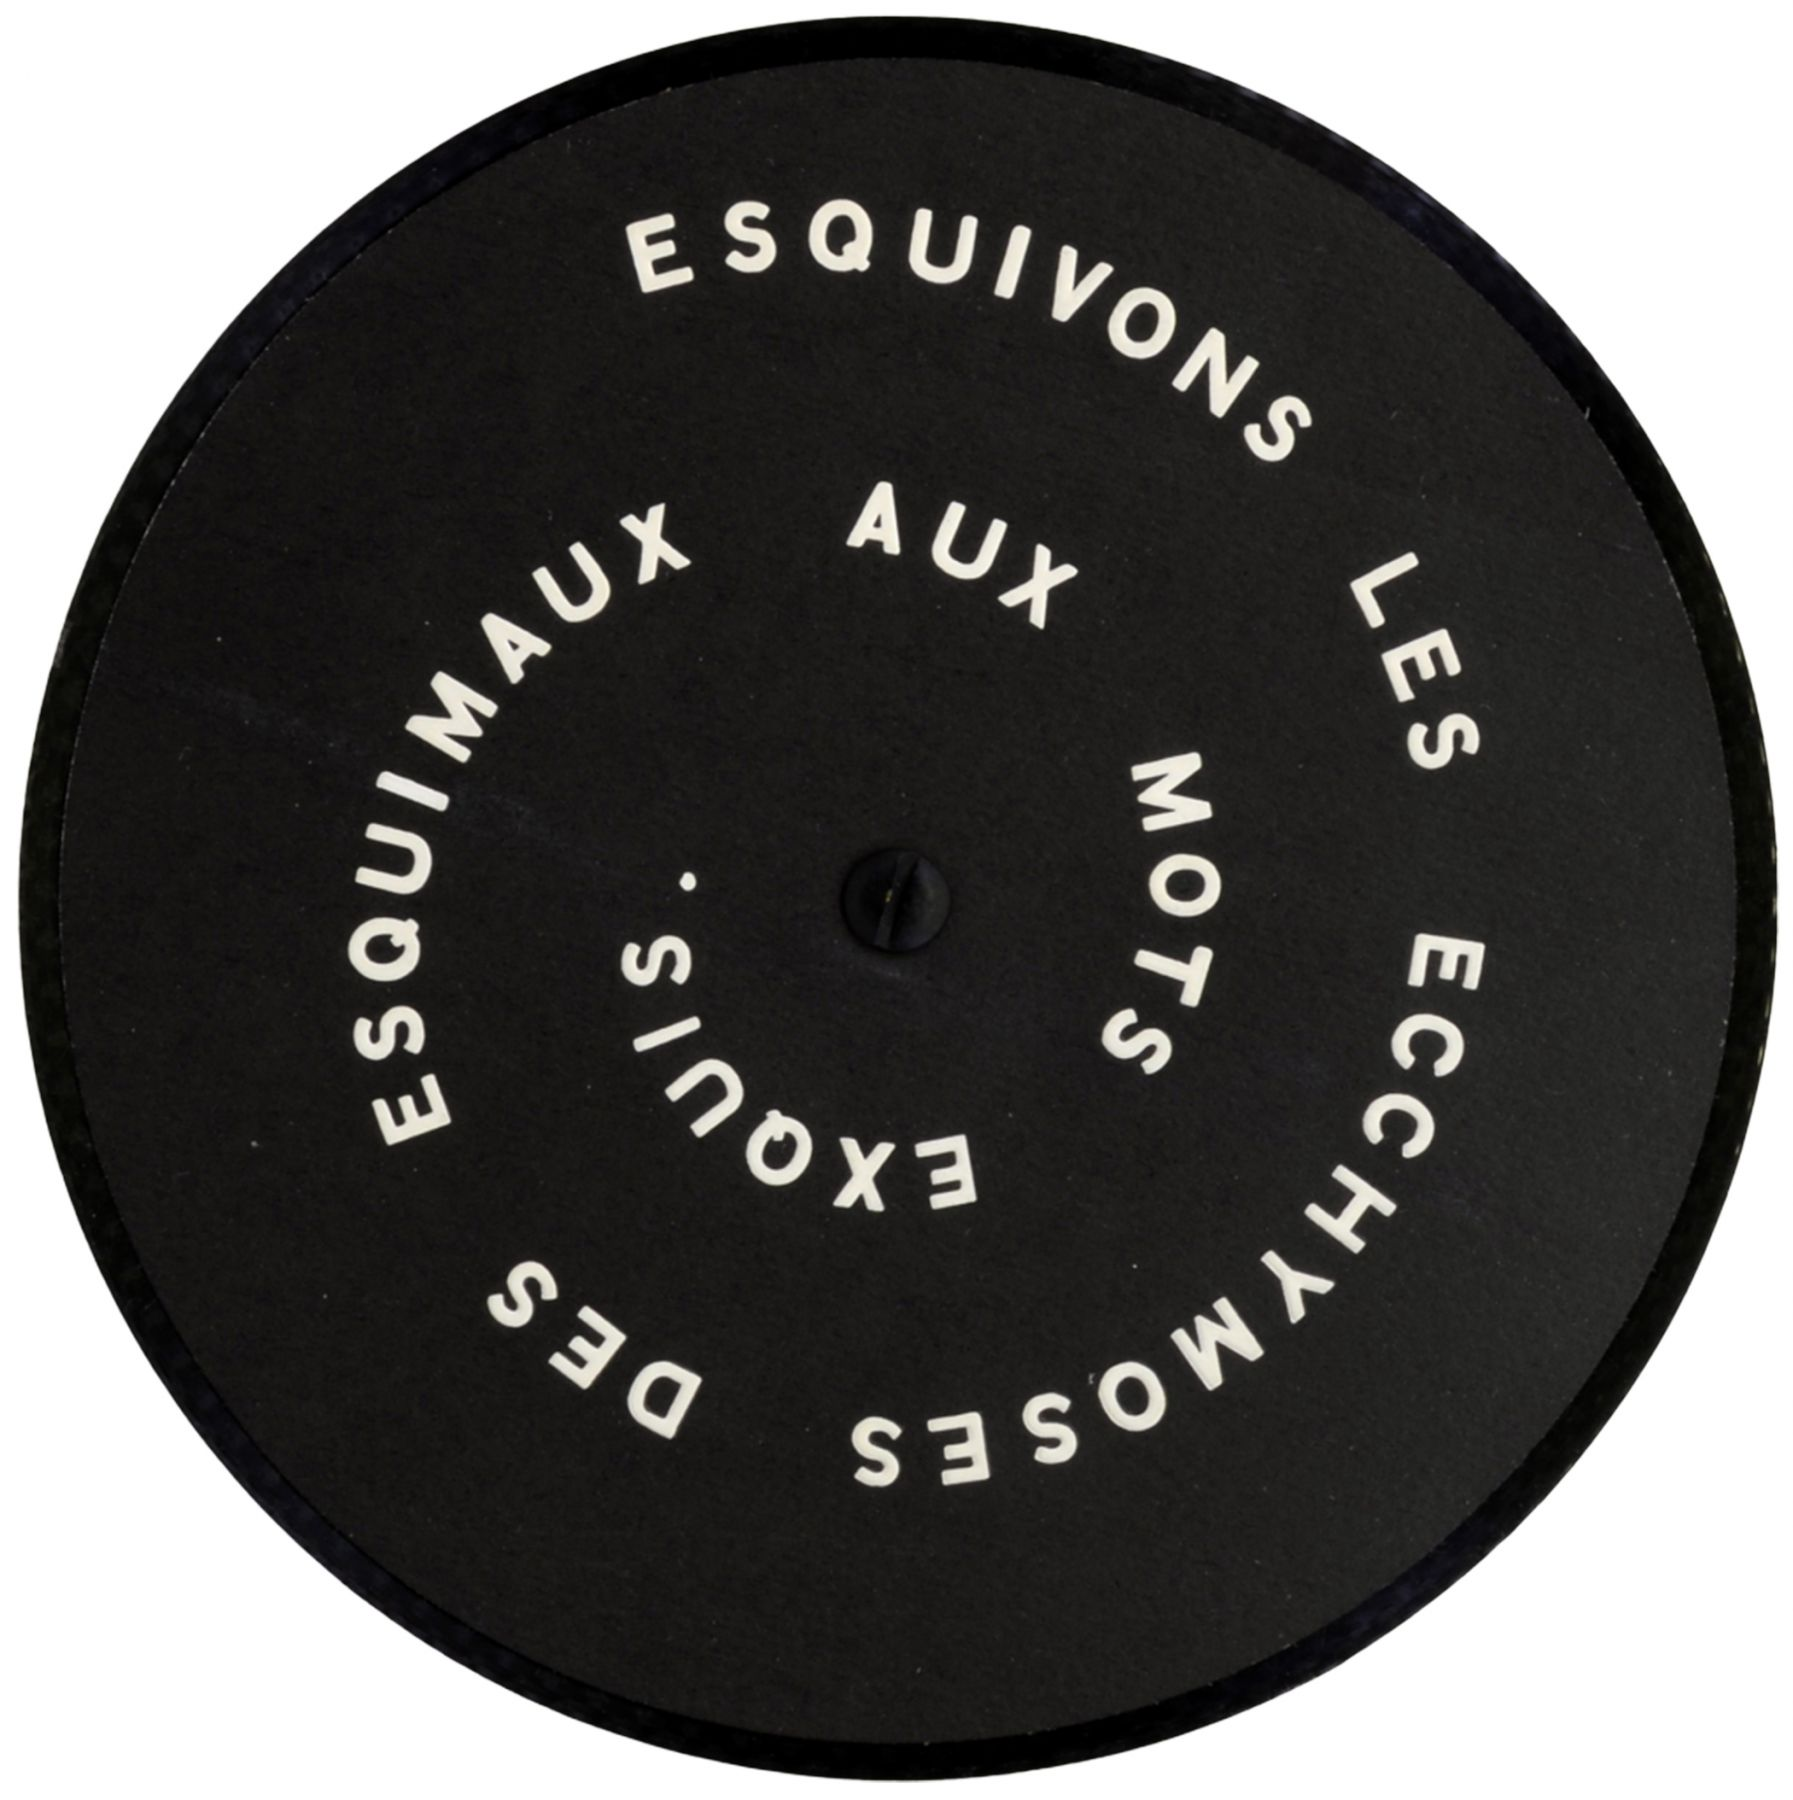 "The record that Marcel Duchamp produced with the Letter Edged in Black Press (""Esquivons les ecchymoses des esquimax aux mots exquis:), 1968. Copyright William N. Copley Estate. Courtesy of Alden Projects™"